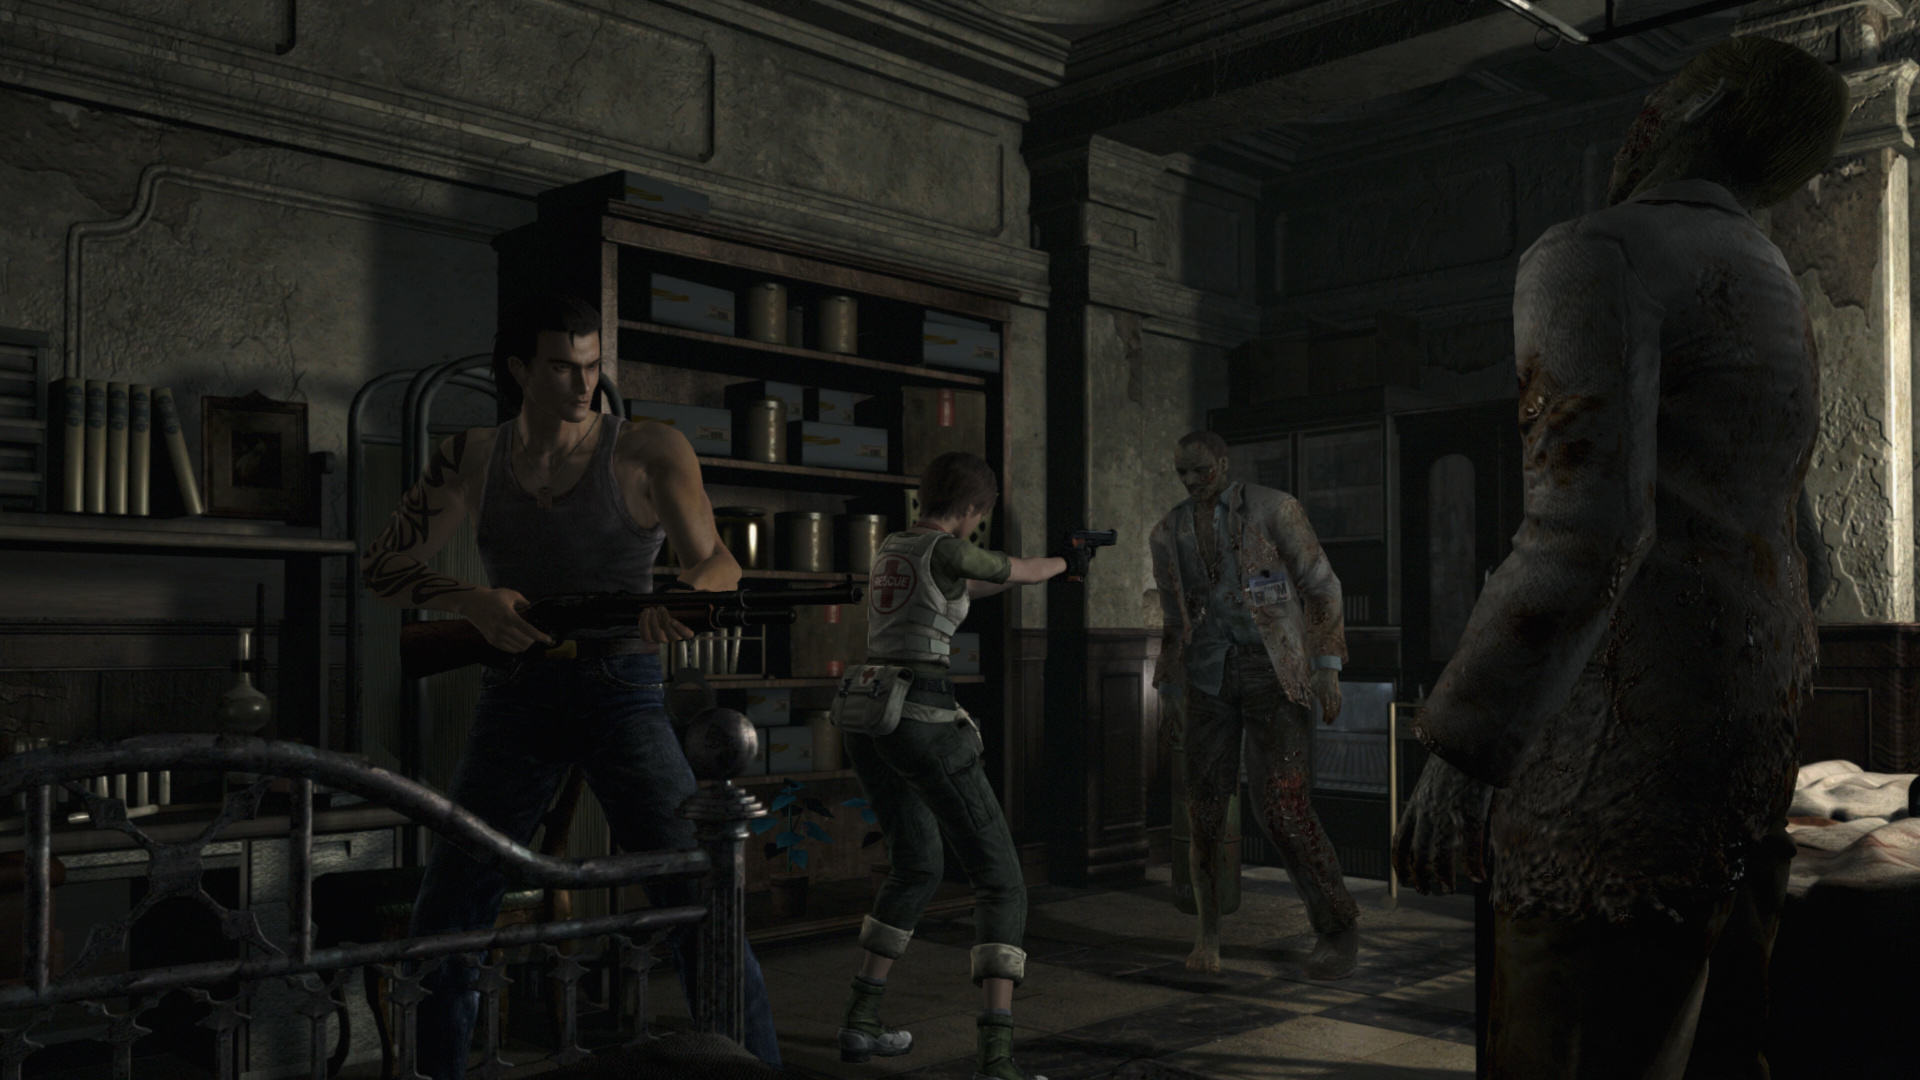 Resident Evil 0 HD Is A Welcome Reminder Of The Series Roots RE0 Review 0010 1452532992